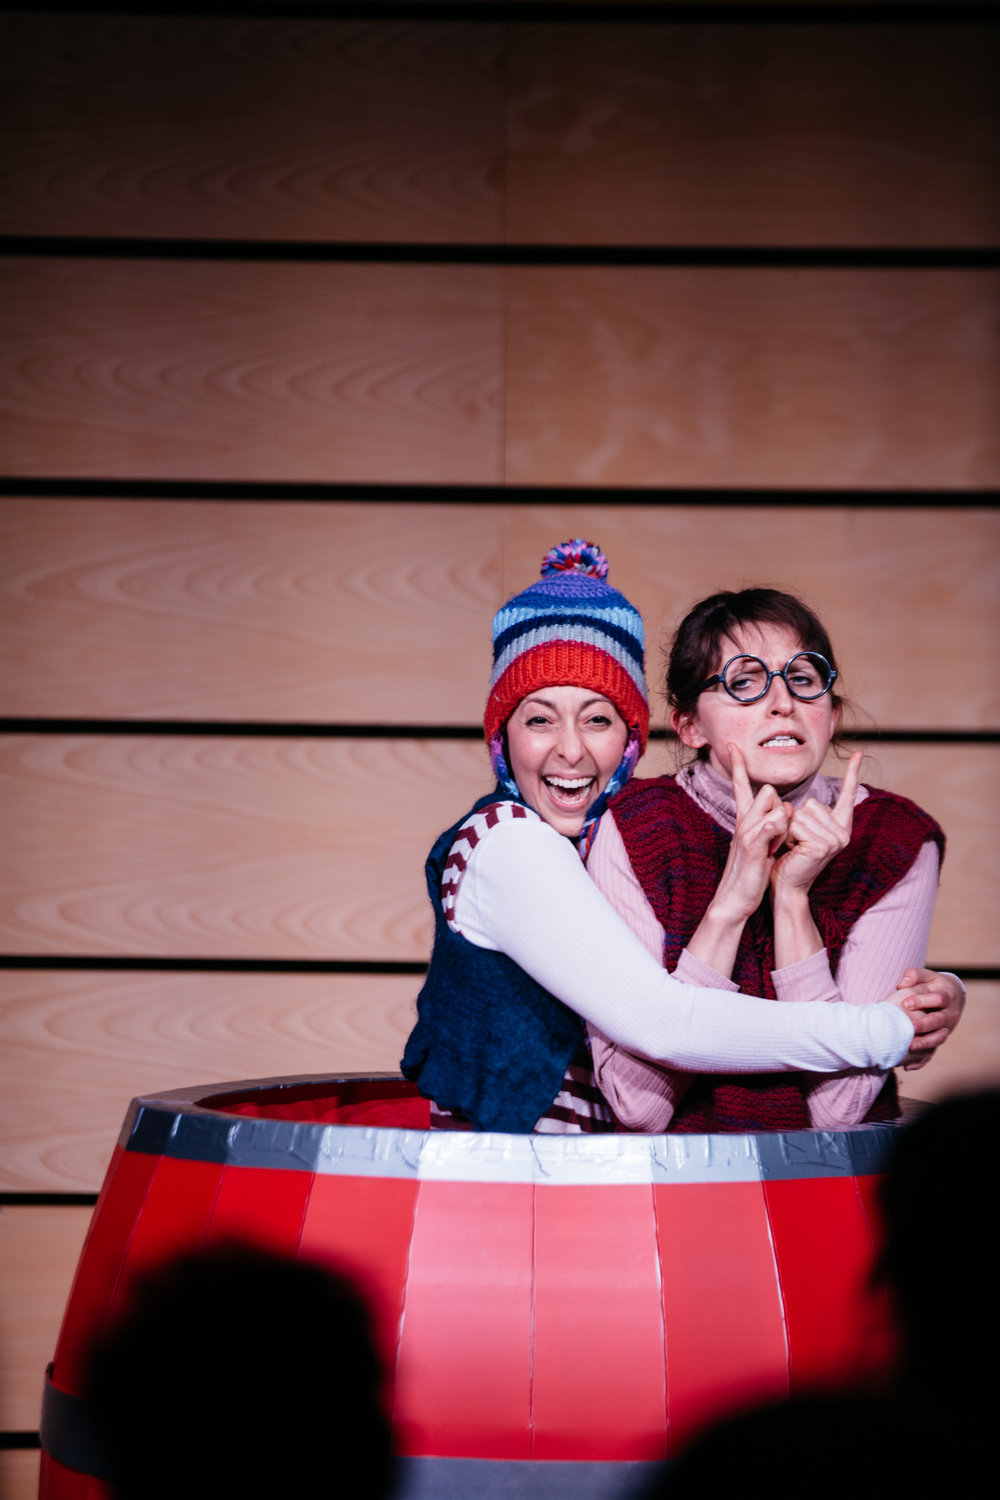 Ruxy and Sarah Rose in their barrel during Imaginate's Ideas Exchange Event in February 2019, Photo by Jassy Earl